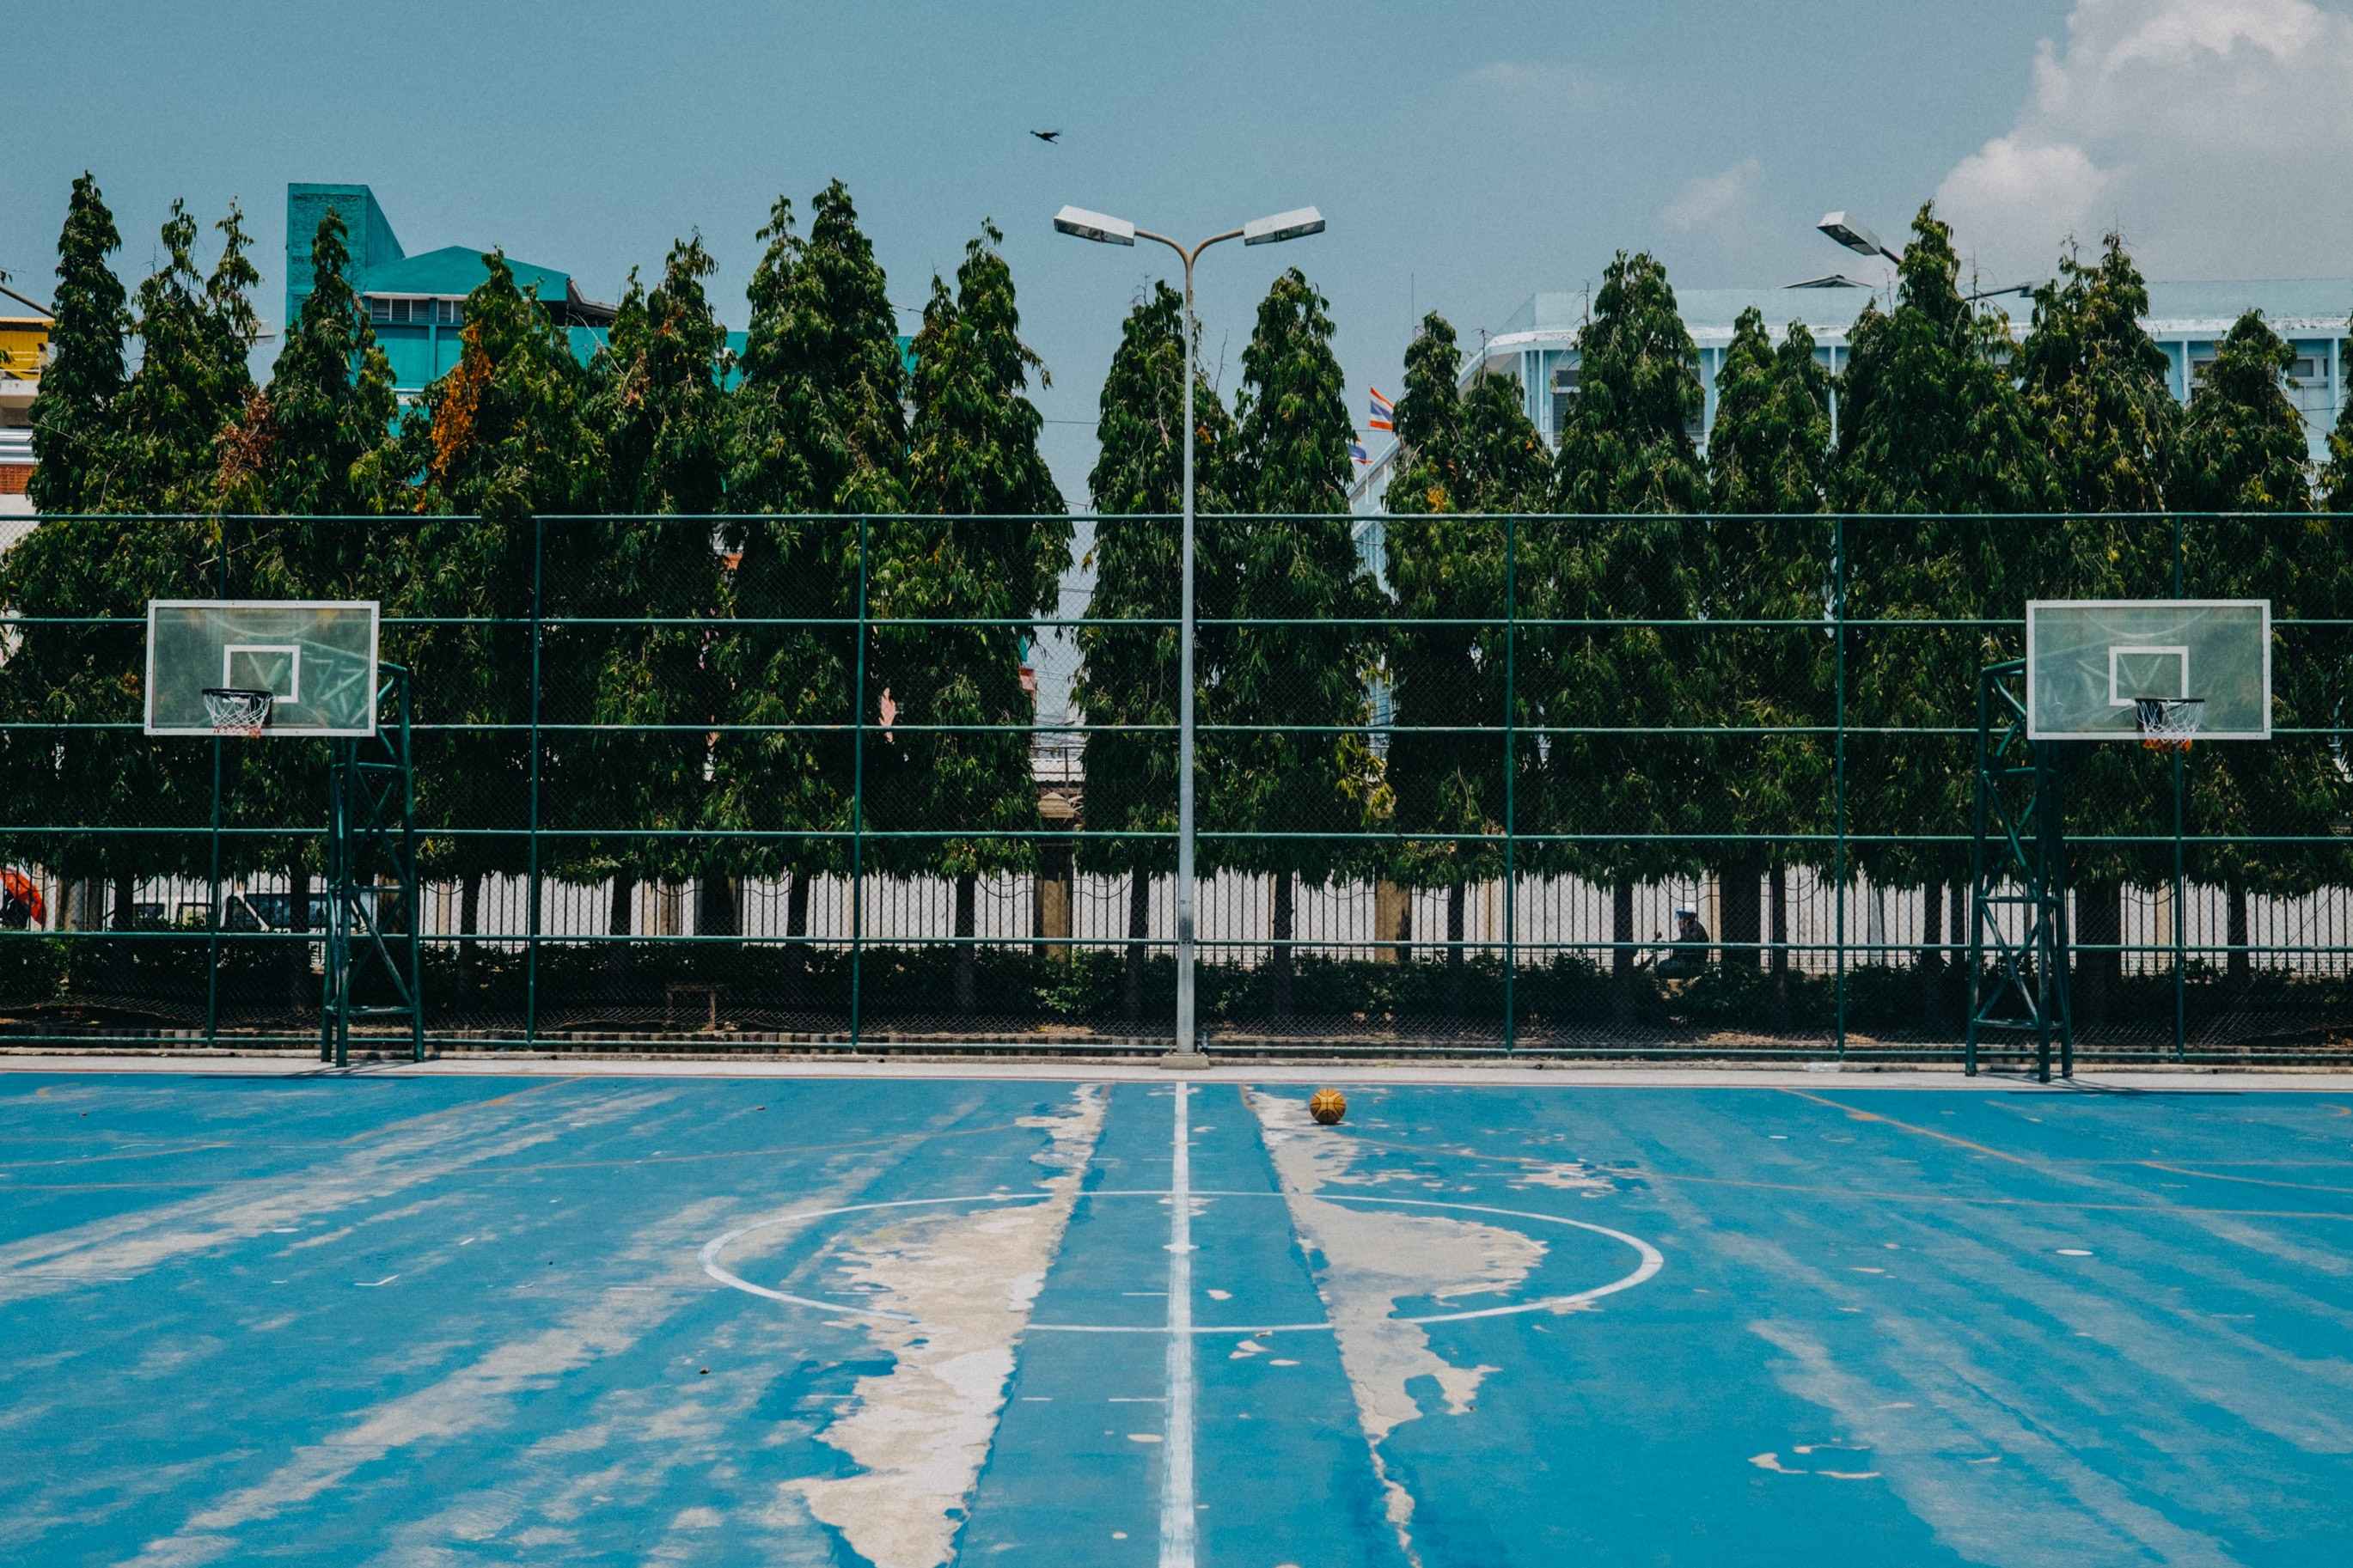 landscape photo of basketball court